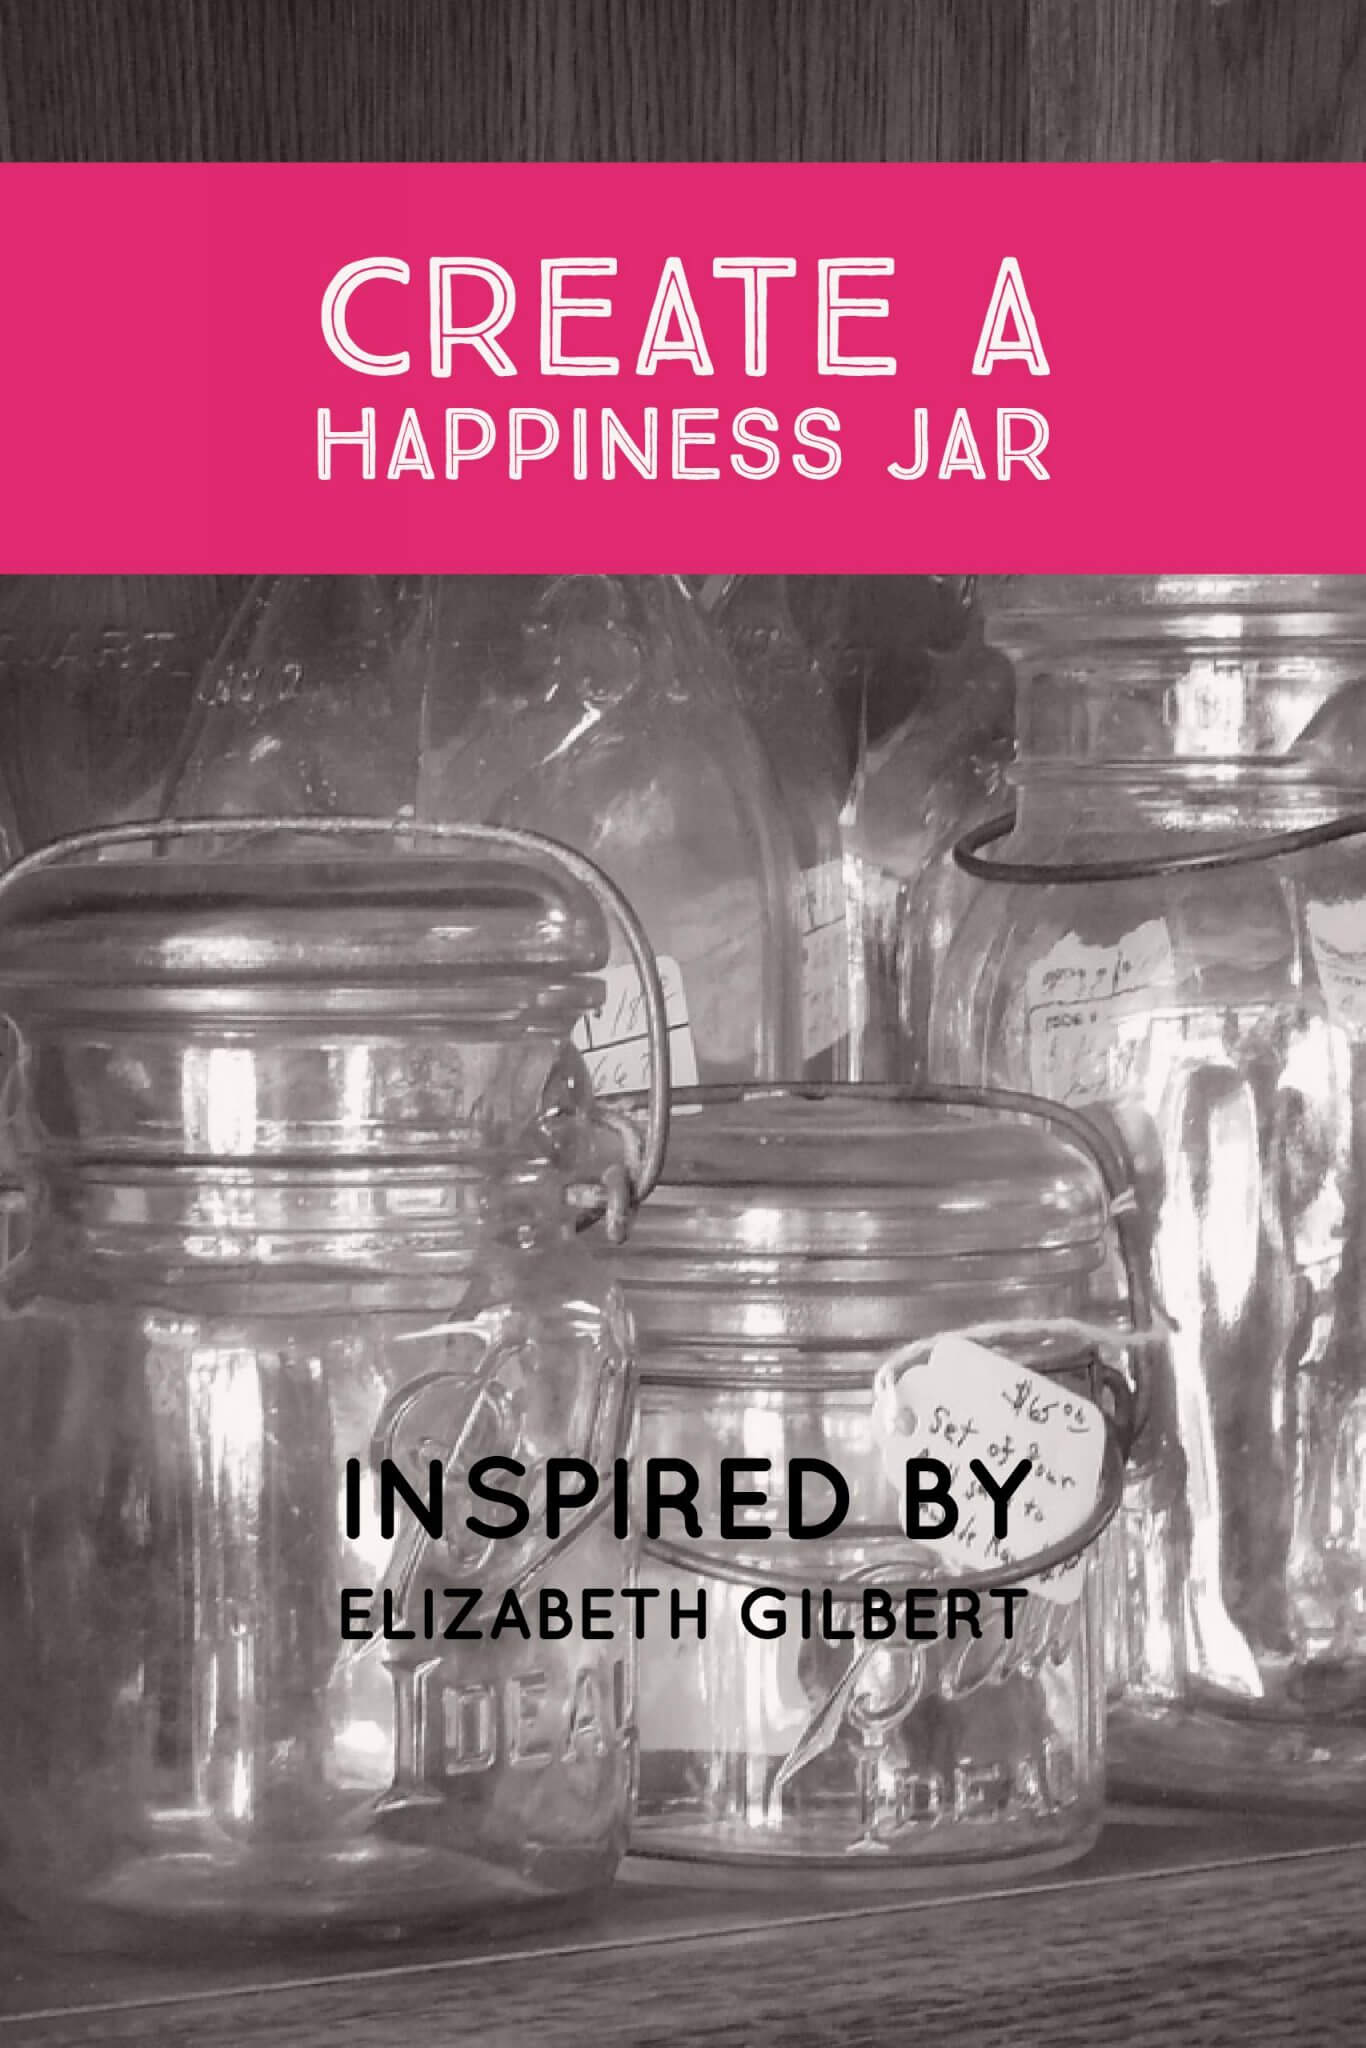 Create a happiness jar